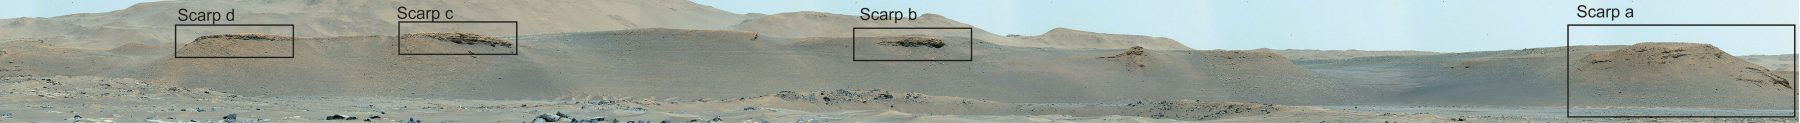 Scarps along the delta which will be studied by the Mars rover. Credit: NASA/JPL-Caltech/ASU/MSSS